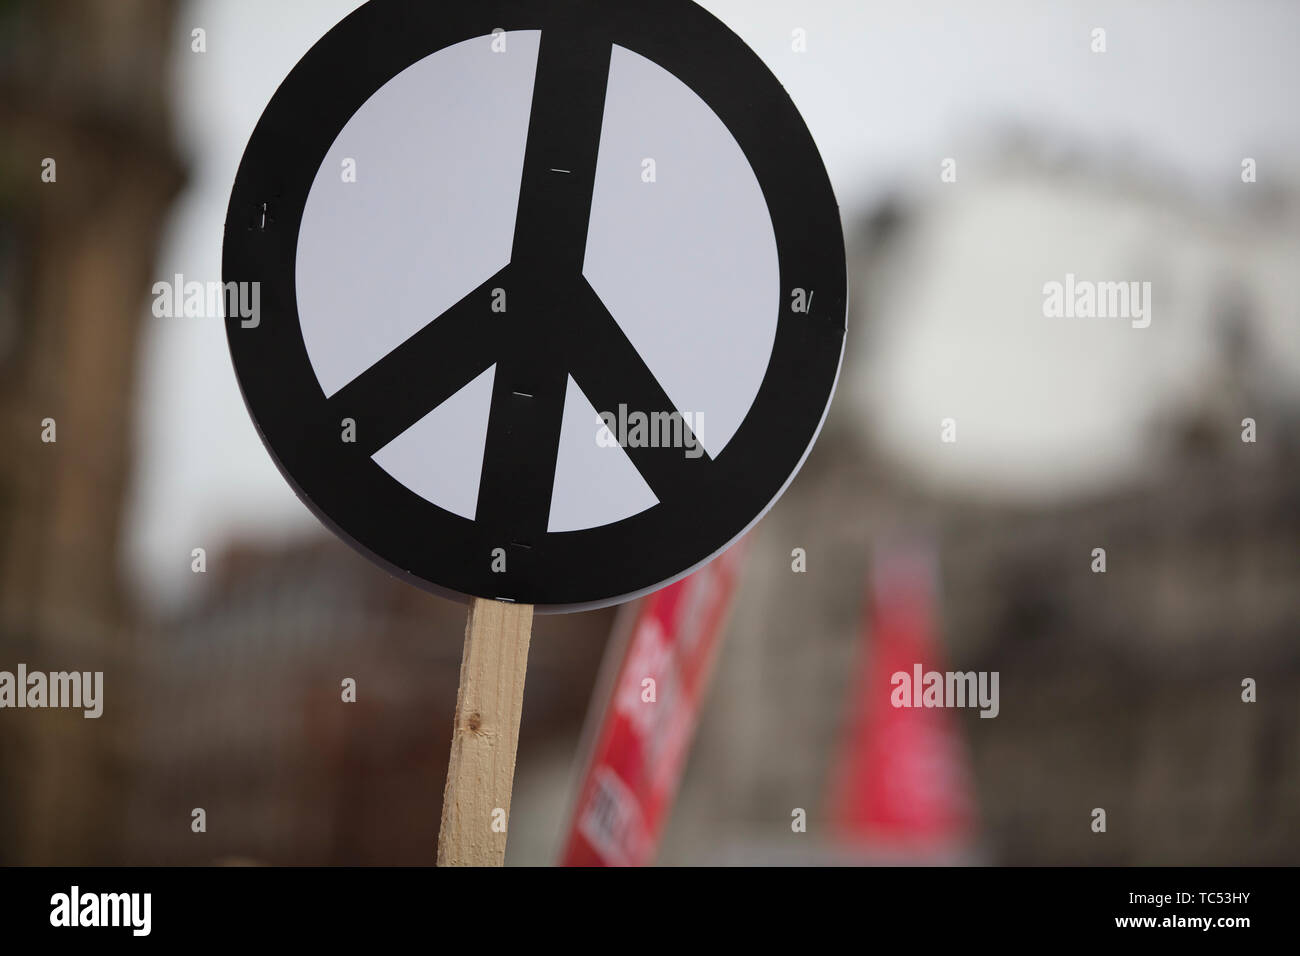 Psychedelic Peace Sign Stock Photos & Psychedelic Peace Sign